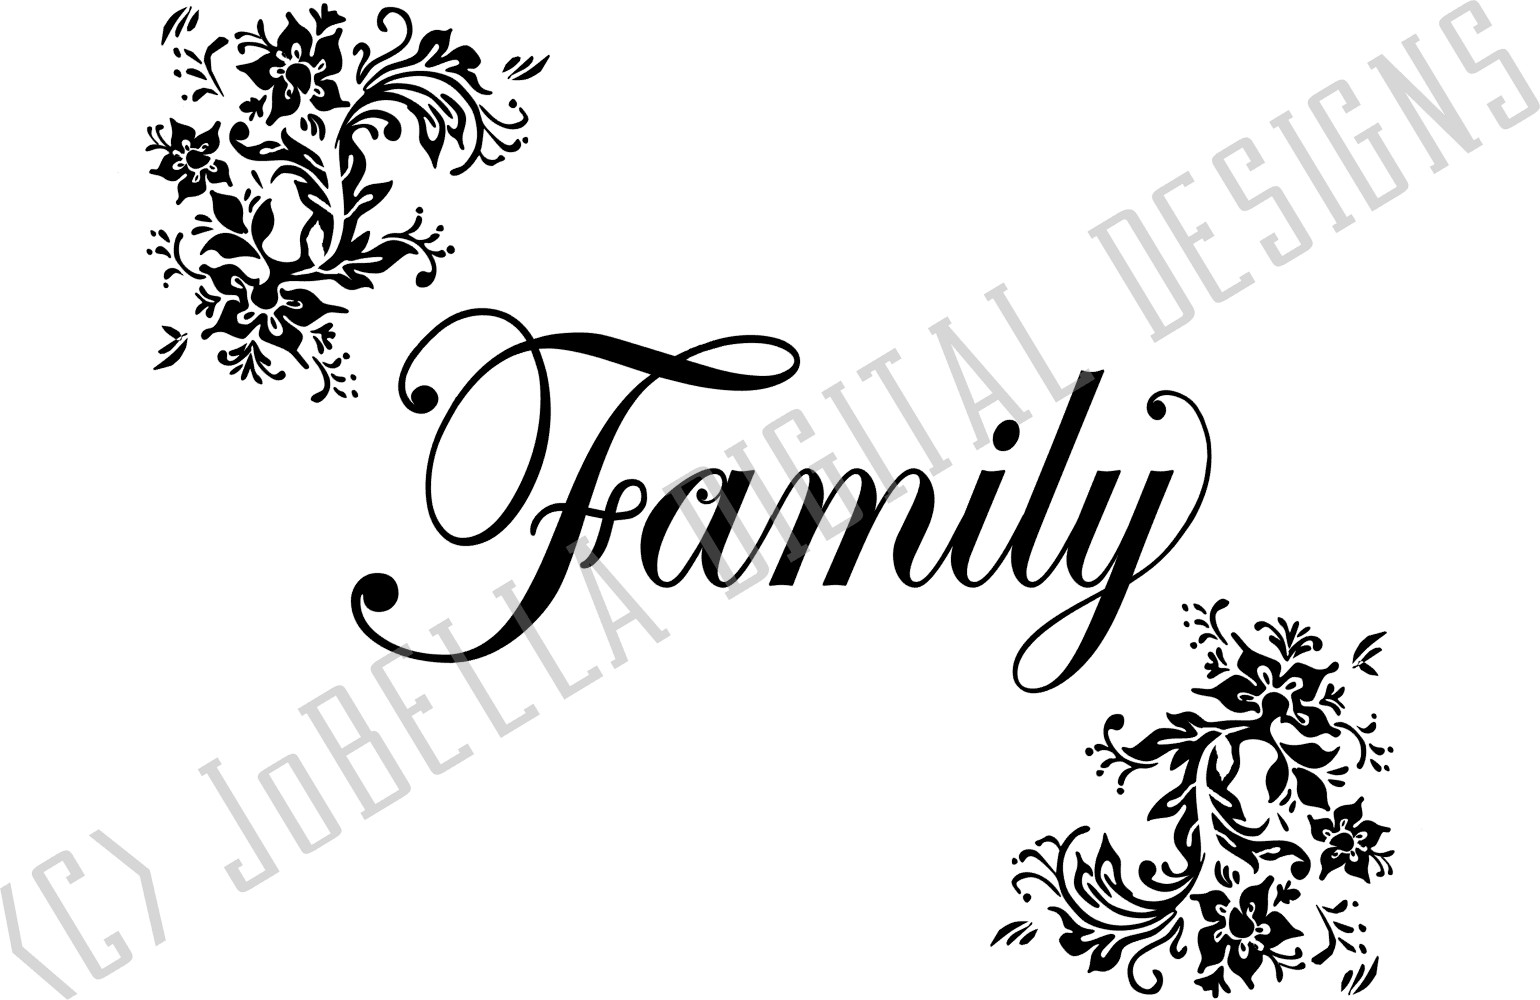 Family SVG and Printable - Floral Farmhouse Design example image 2